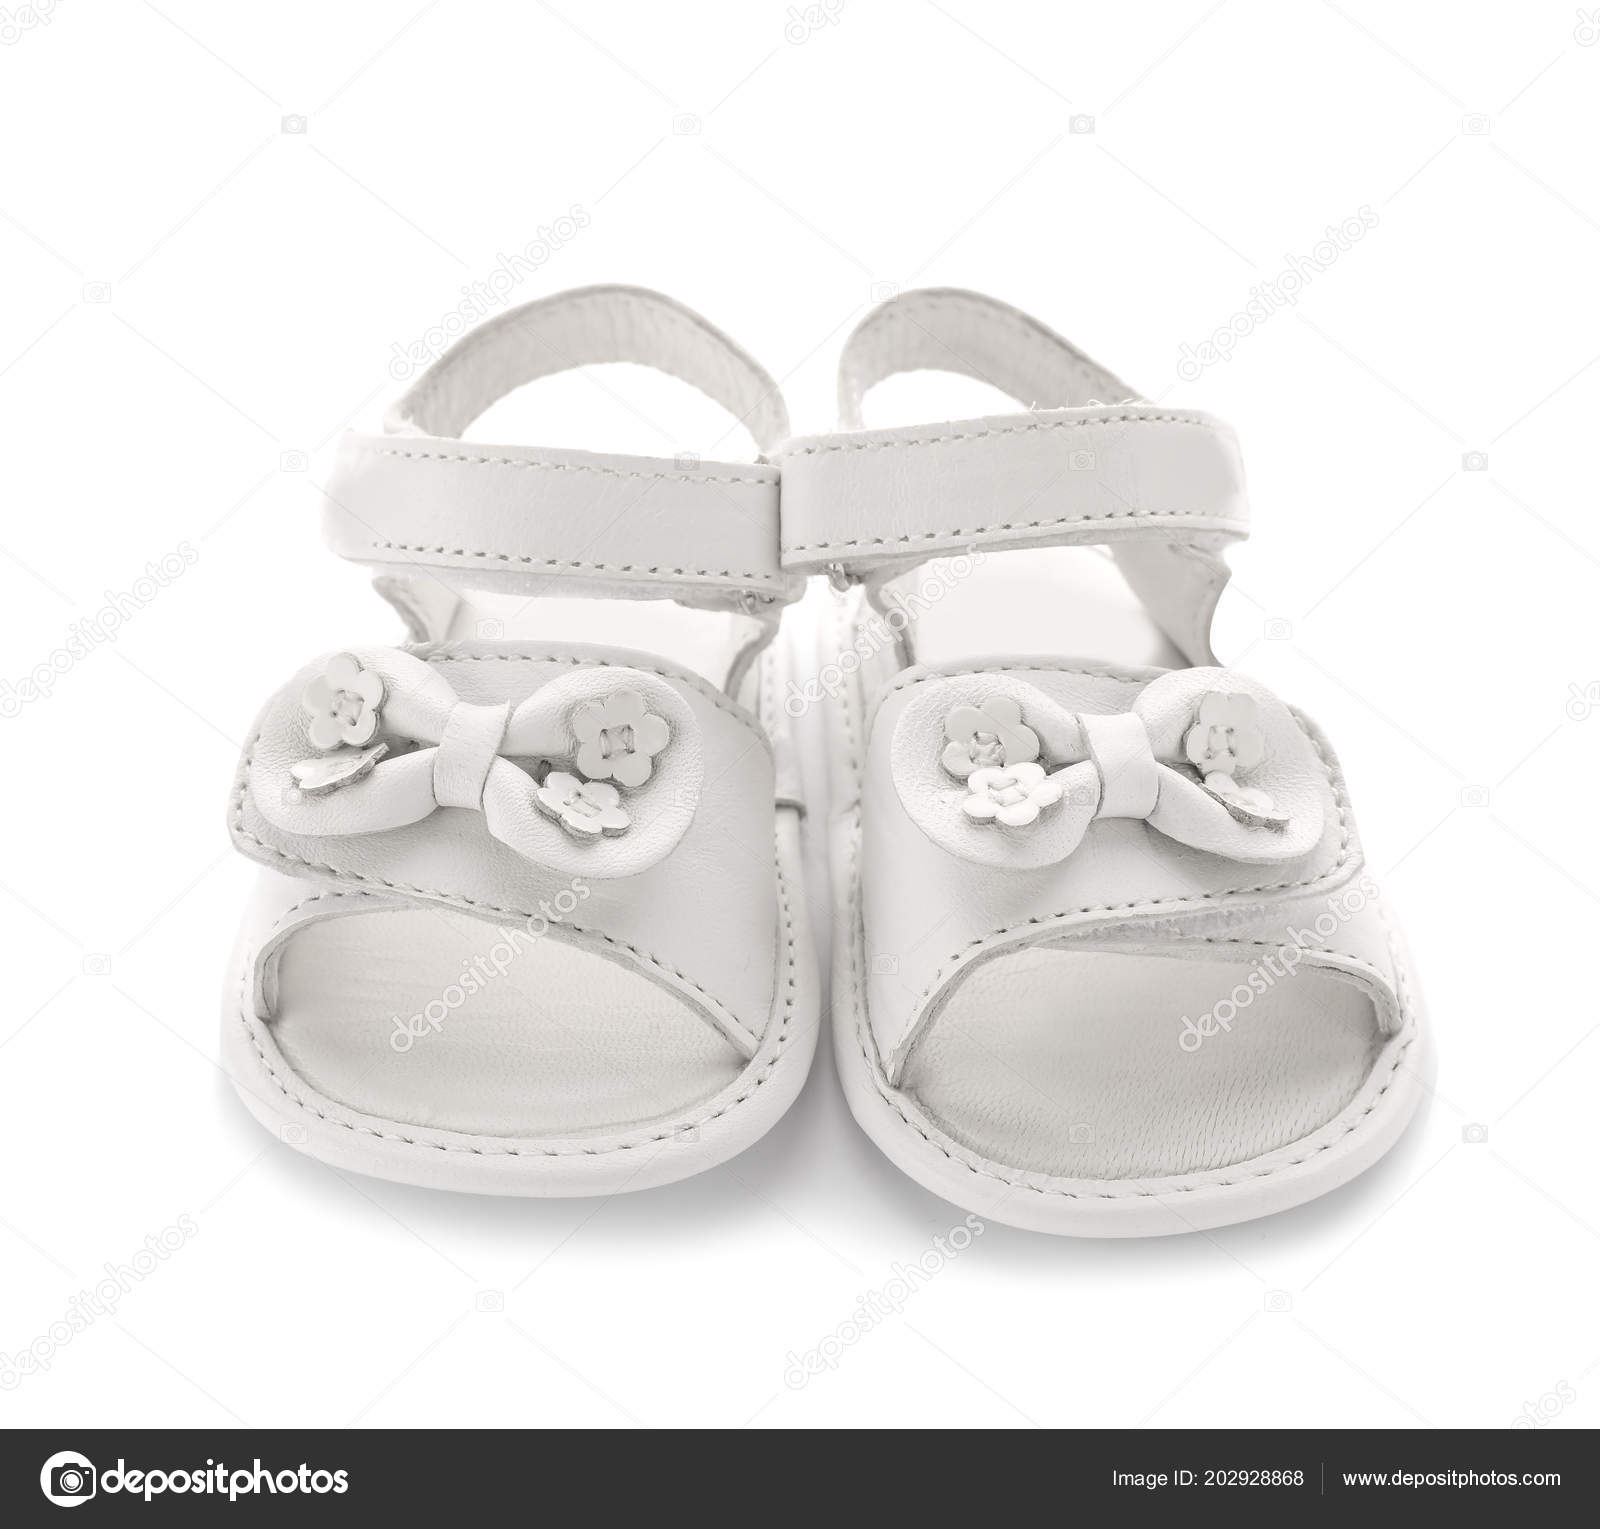 99d5fdc3b8a55 Pair Cute Baby Sandals Decorated Bows White Background — Stock Photo ...